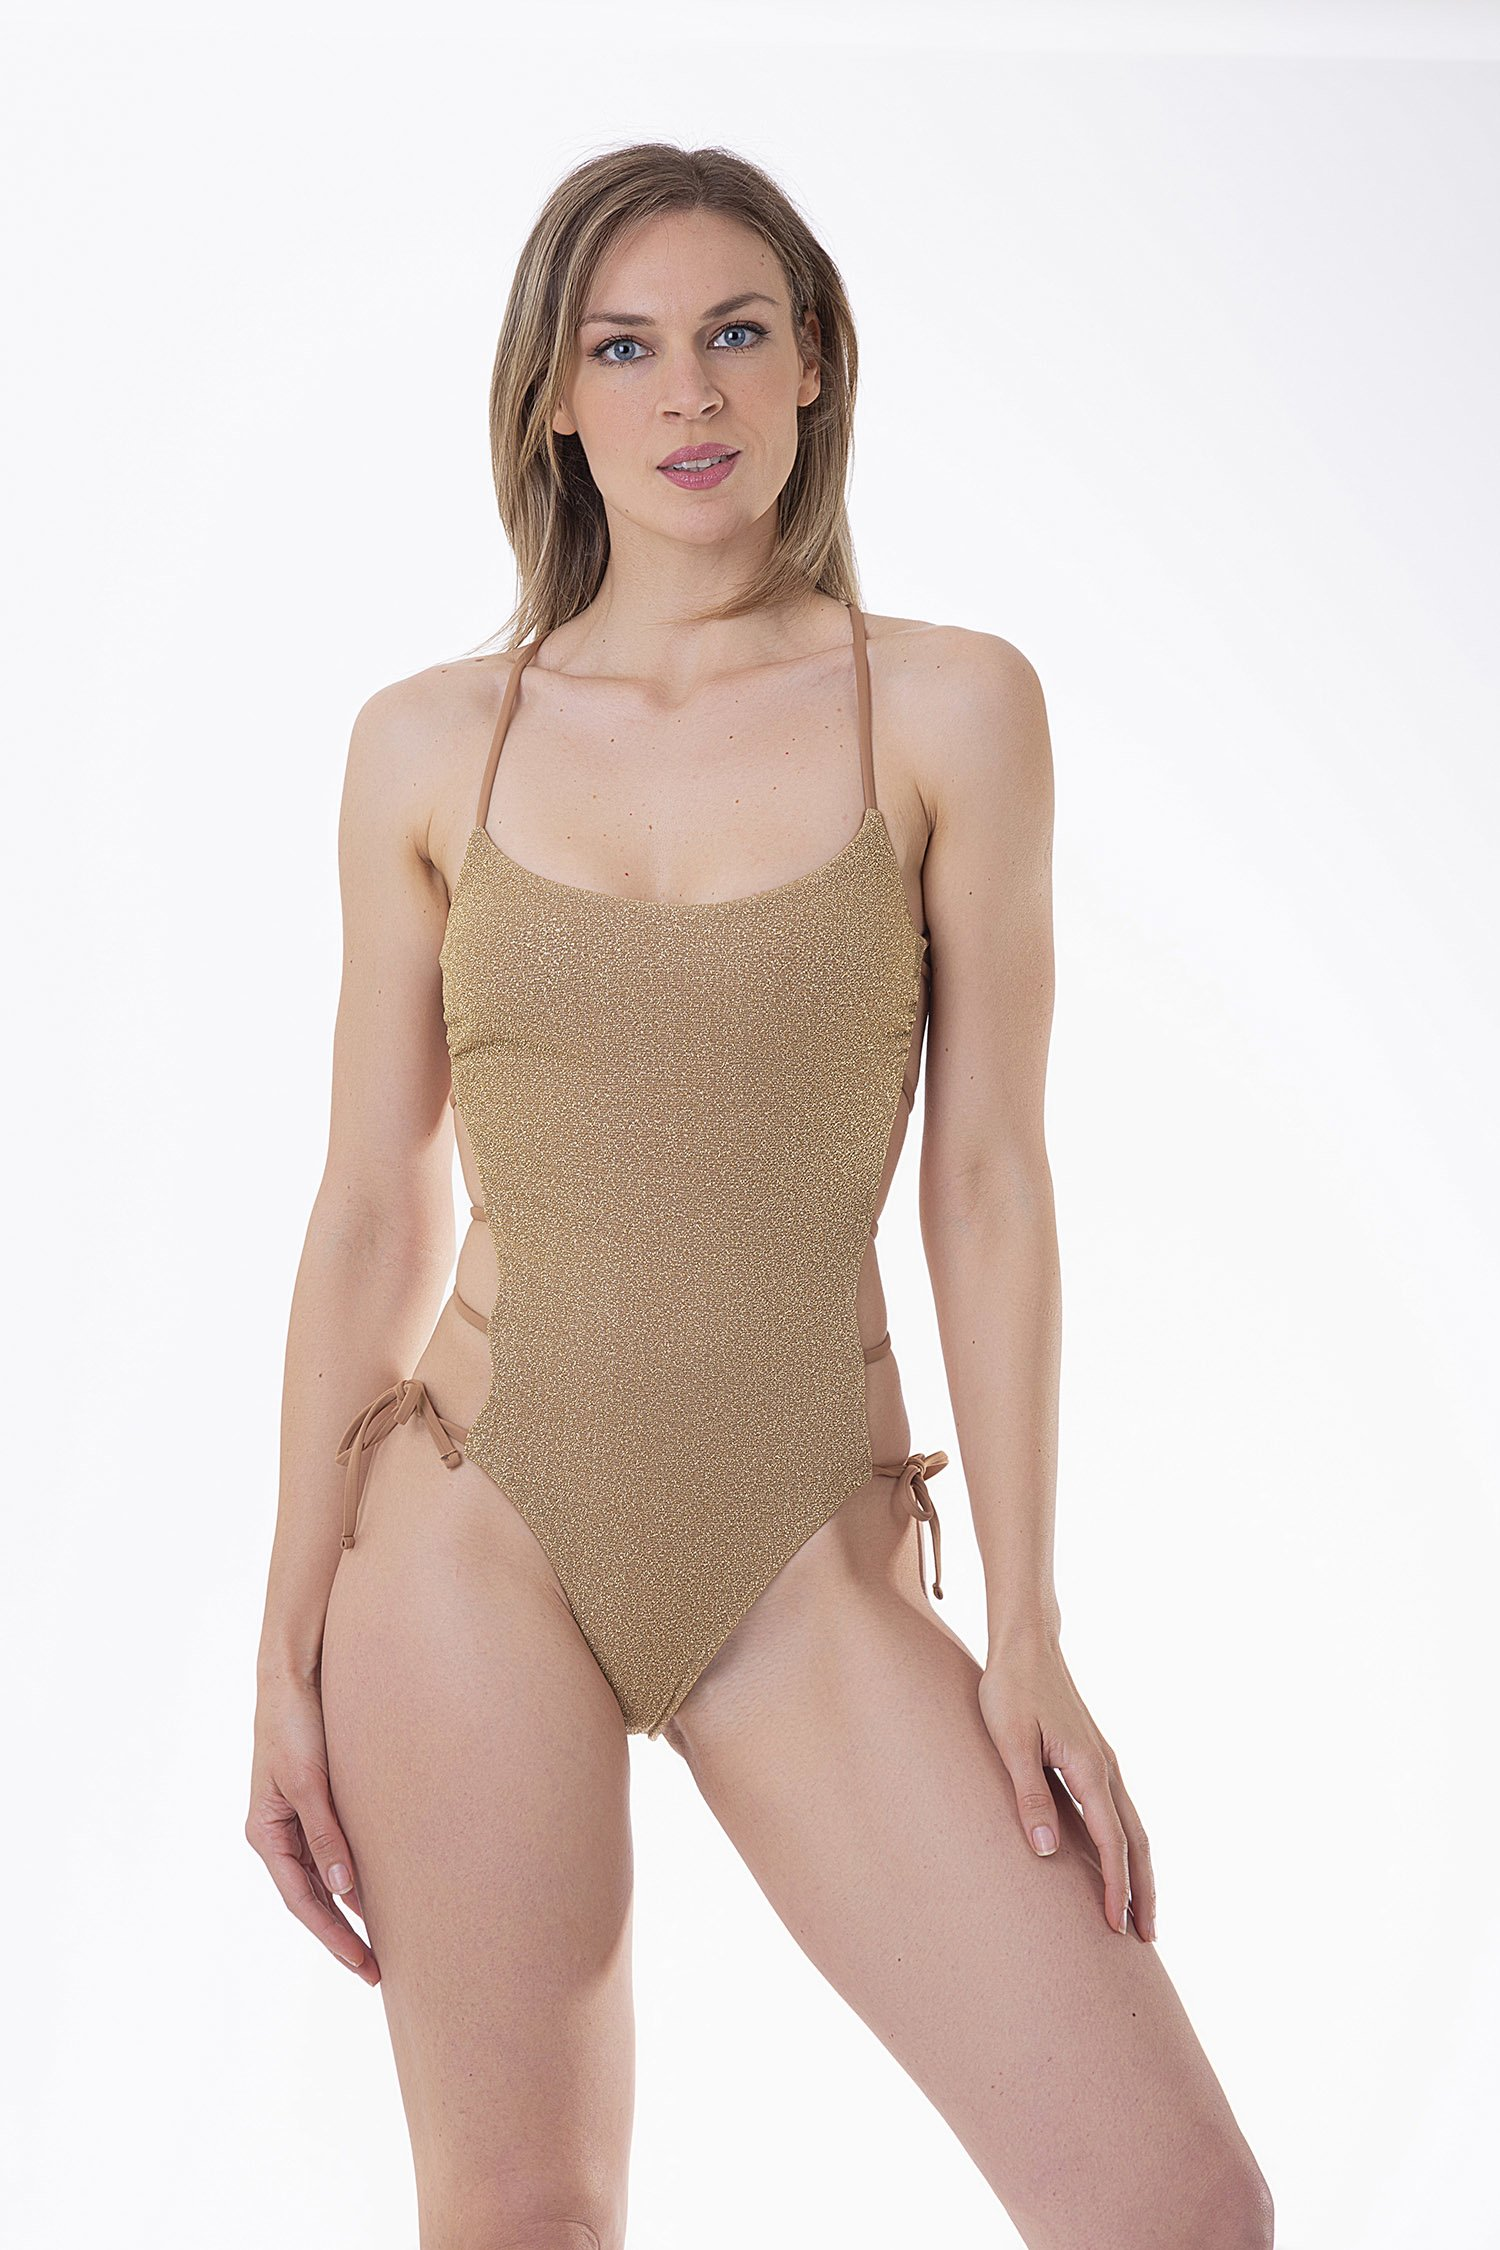 ONE-PIECE LUREX - Lurex Oro